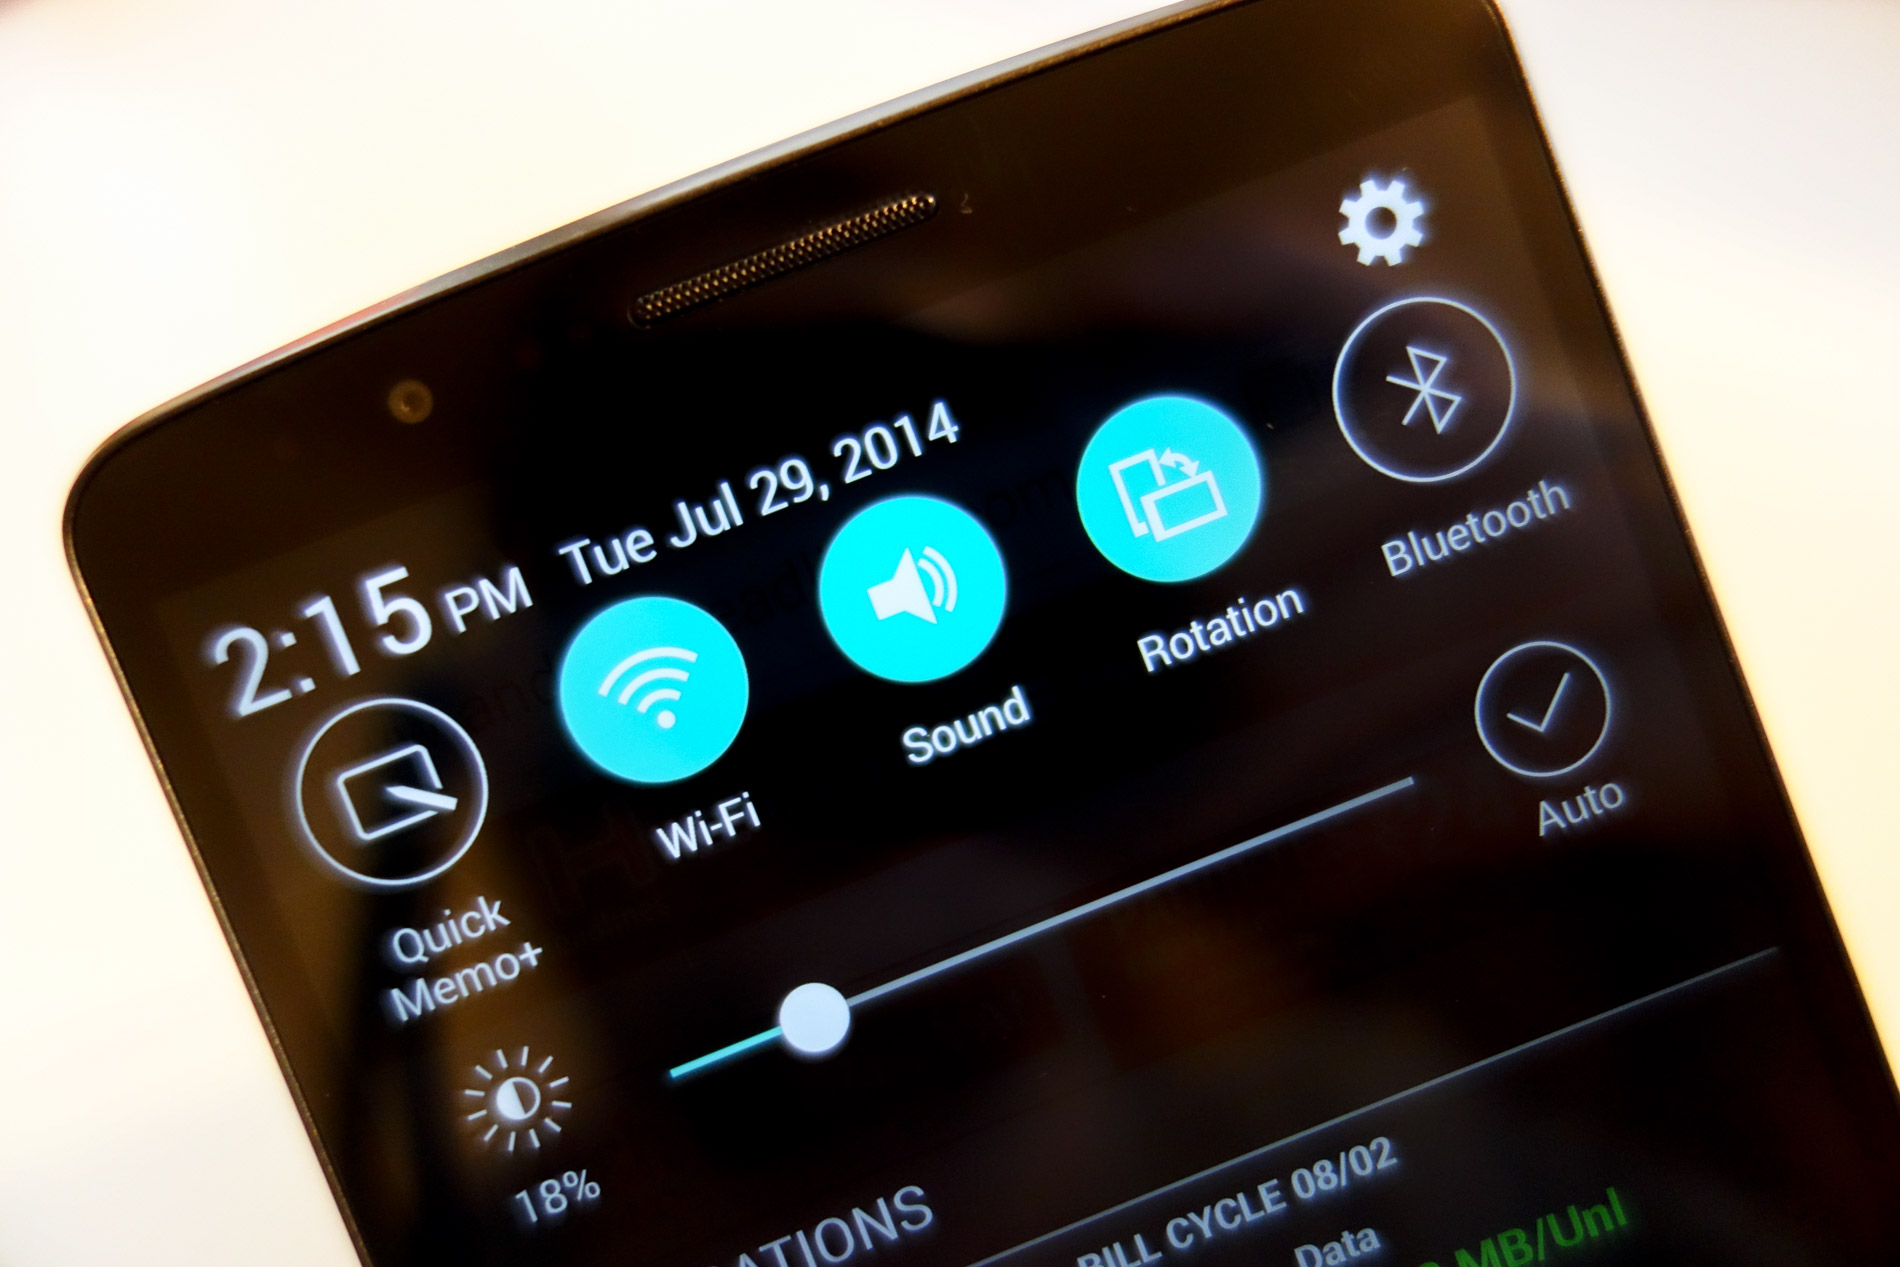 Android How To: Remove Volume and Brightness Sliders on the LG G3